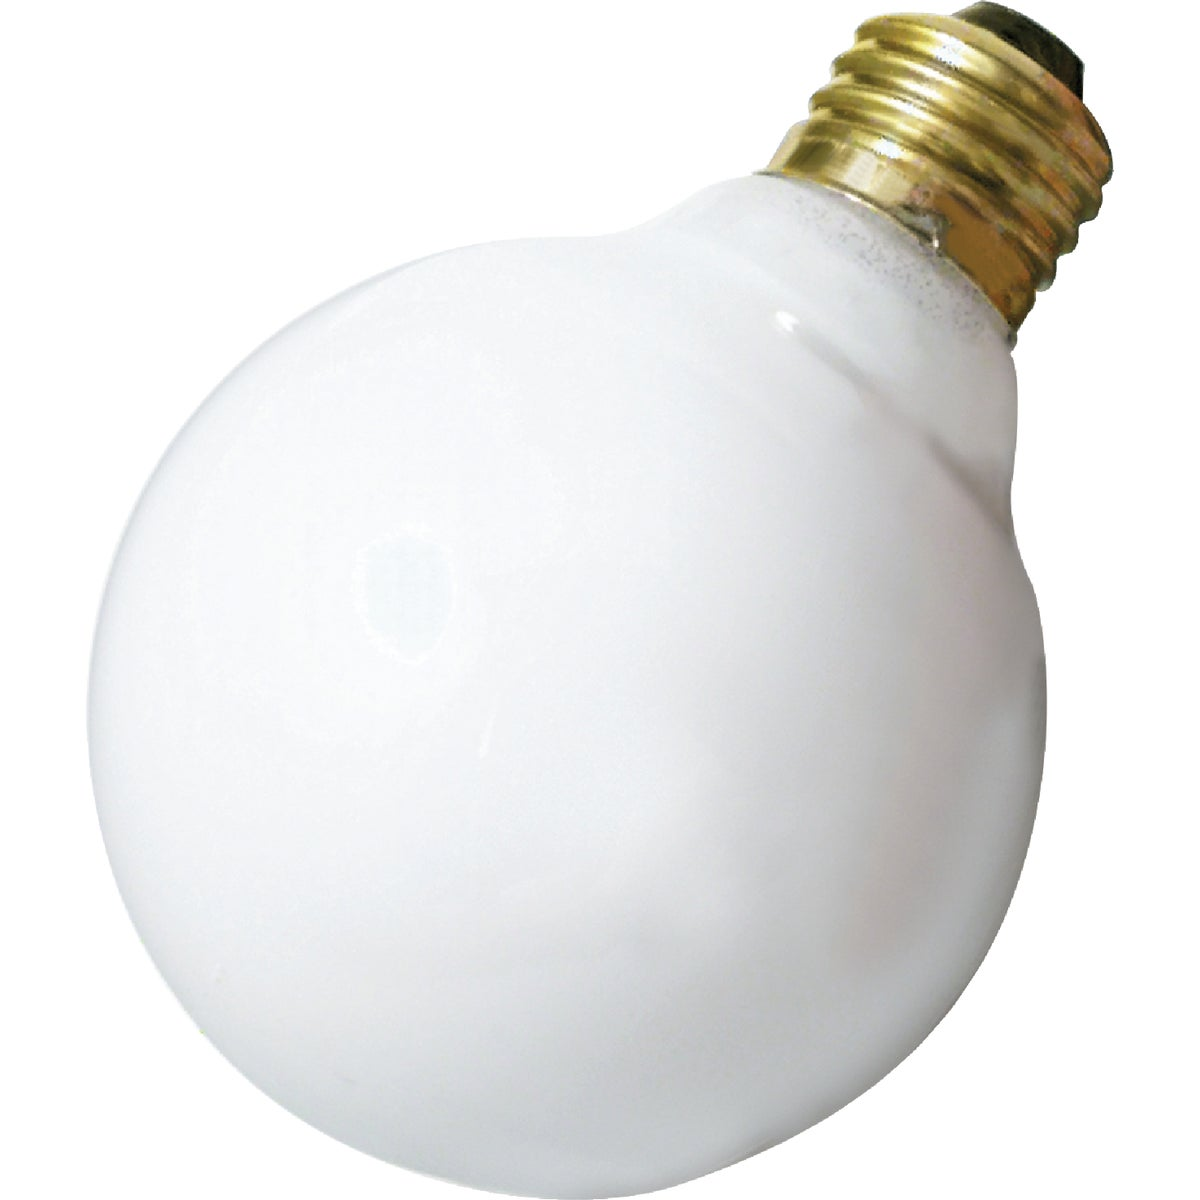 "25W WHT 3-1/8""GLOBE BULB - 12982 25G25/W by G E Lighting"